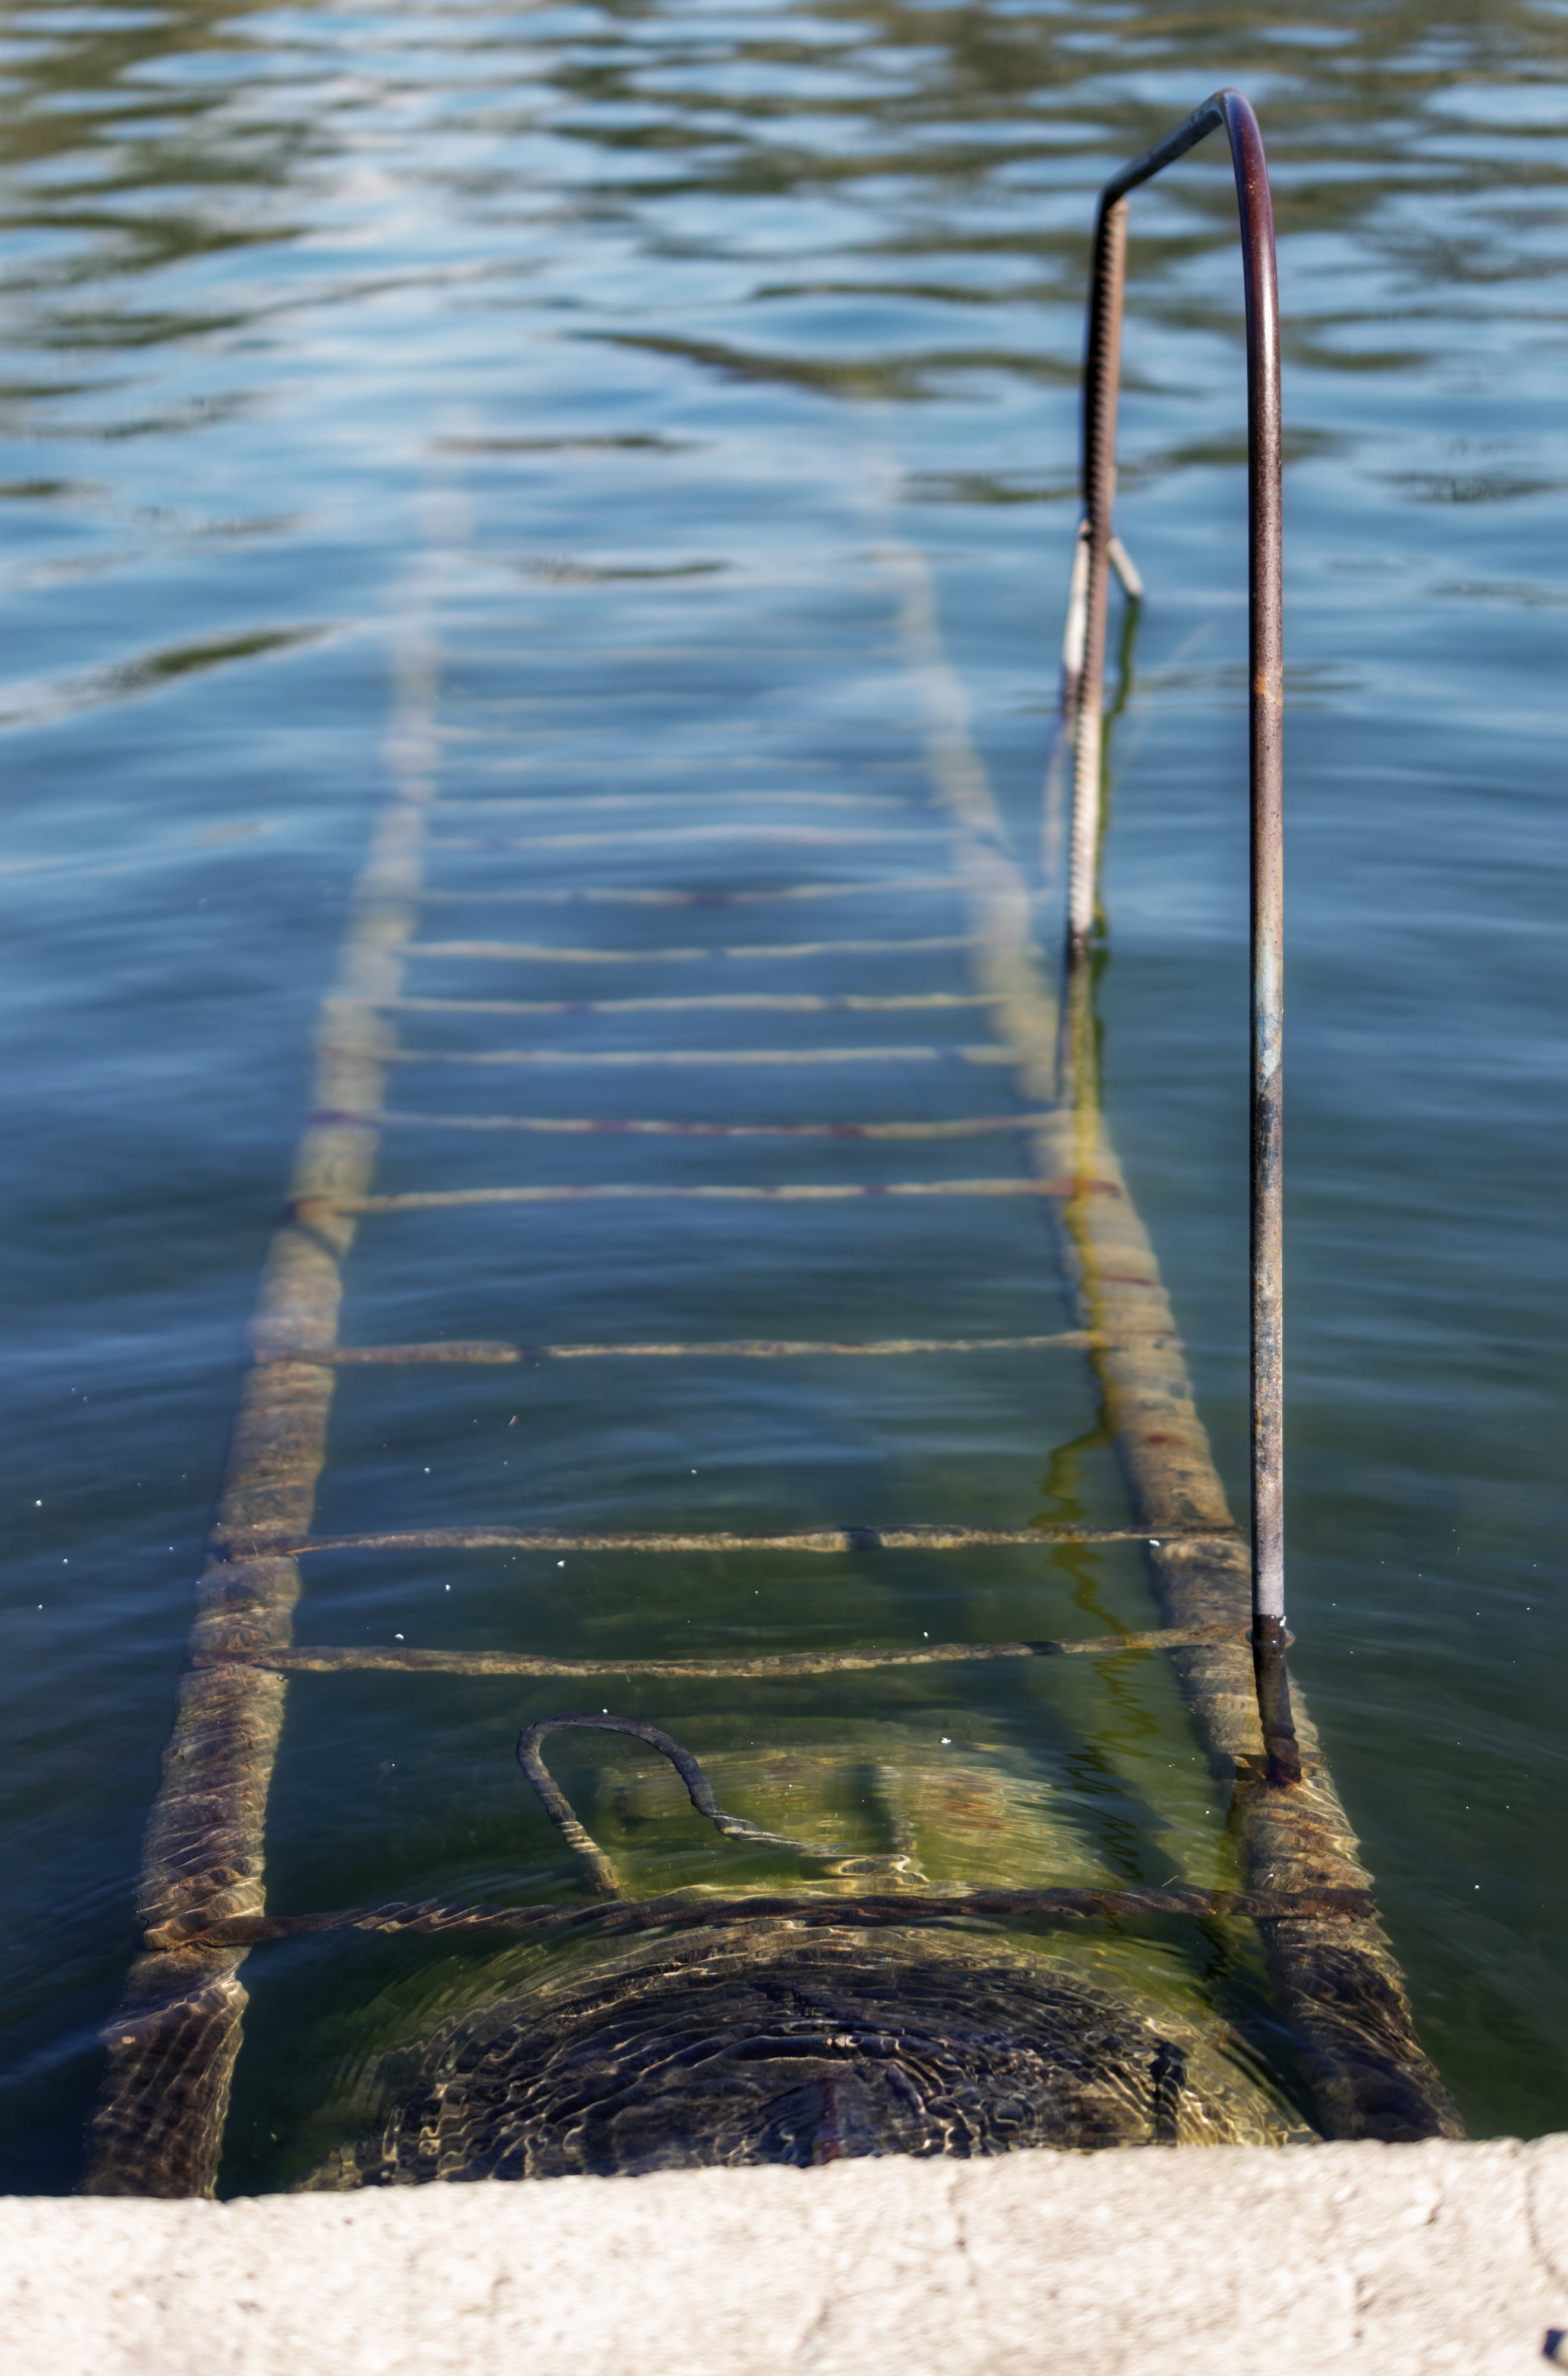 Free stock photo of metal stair under water, pond